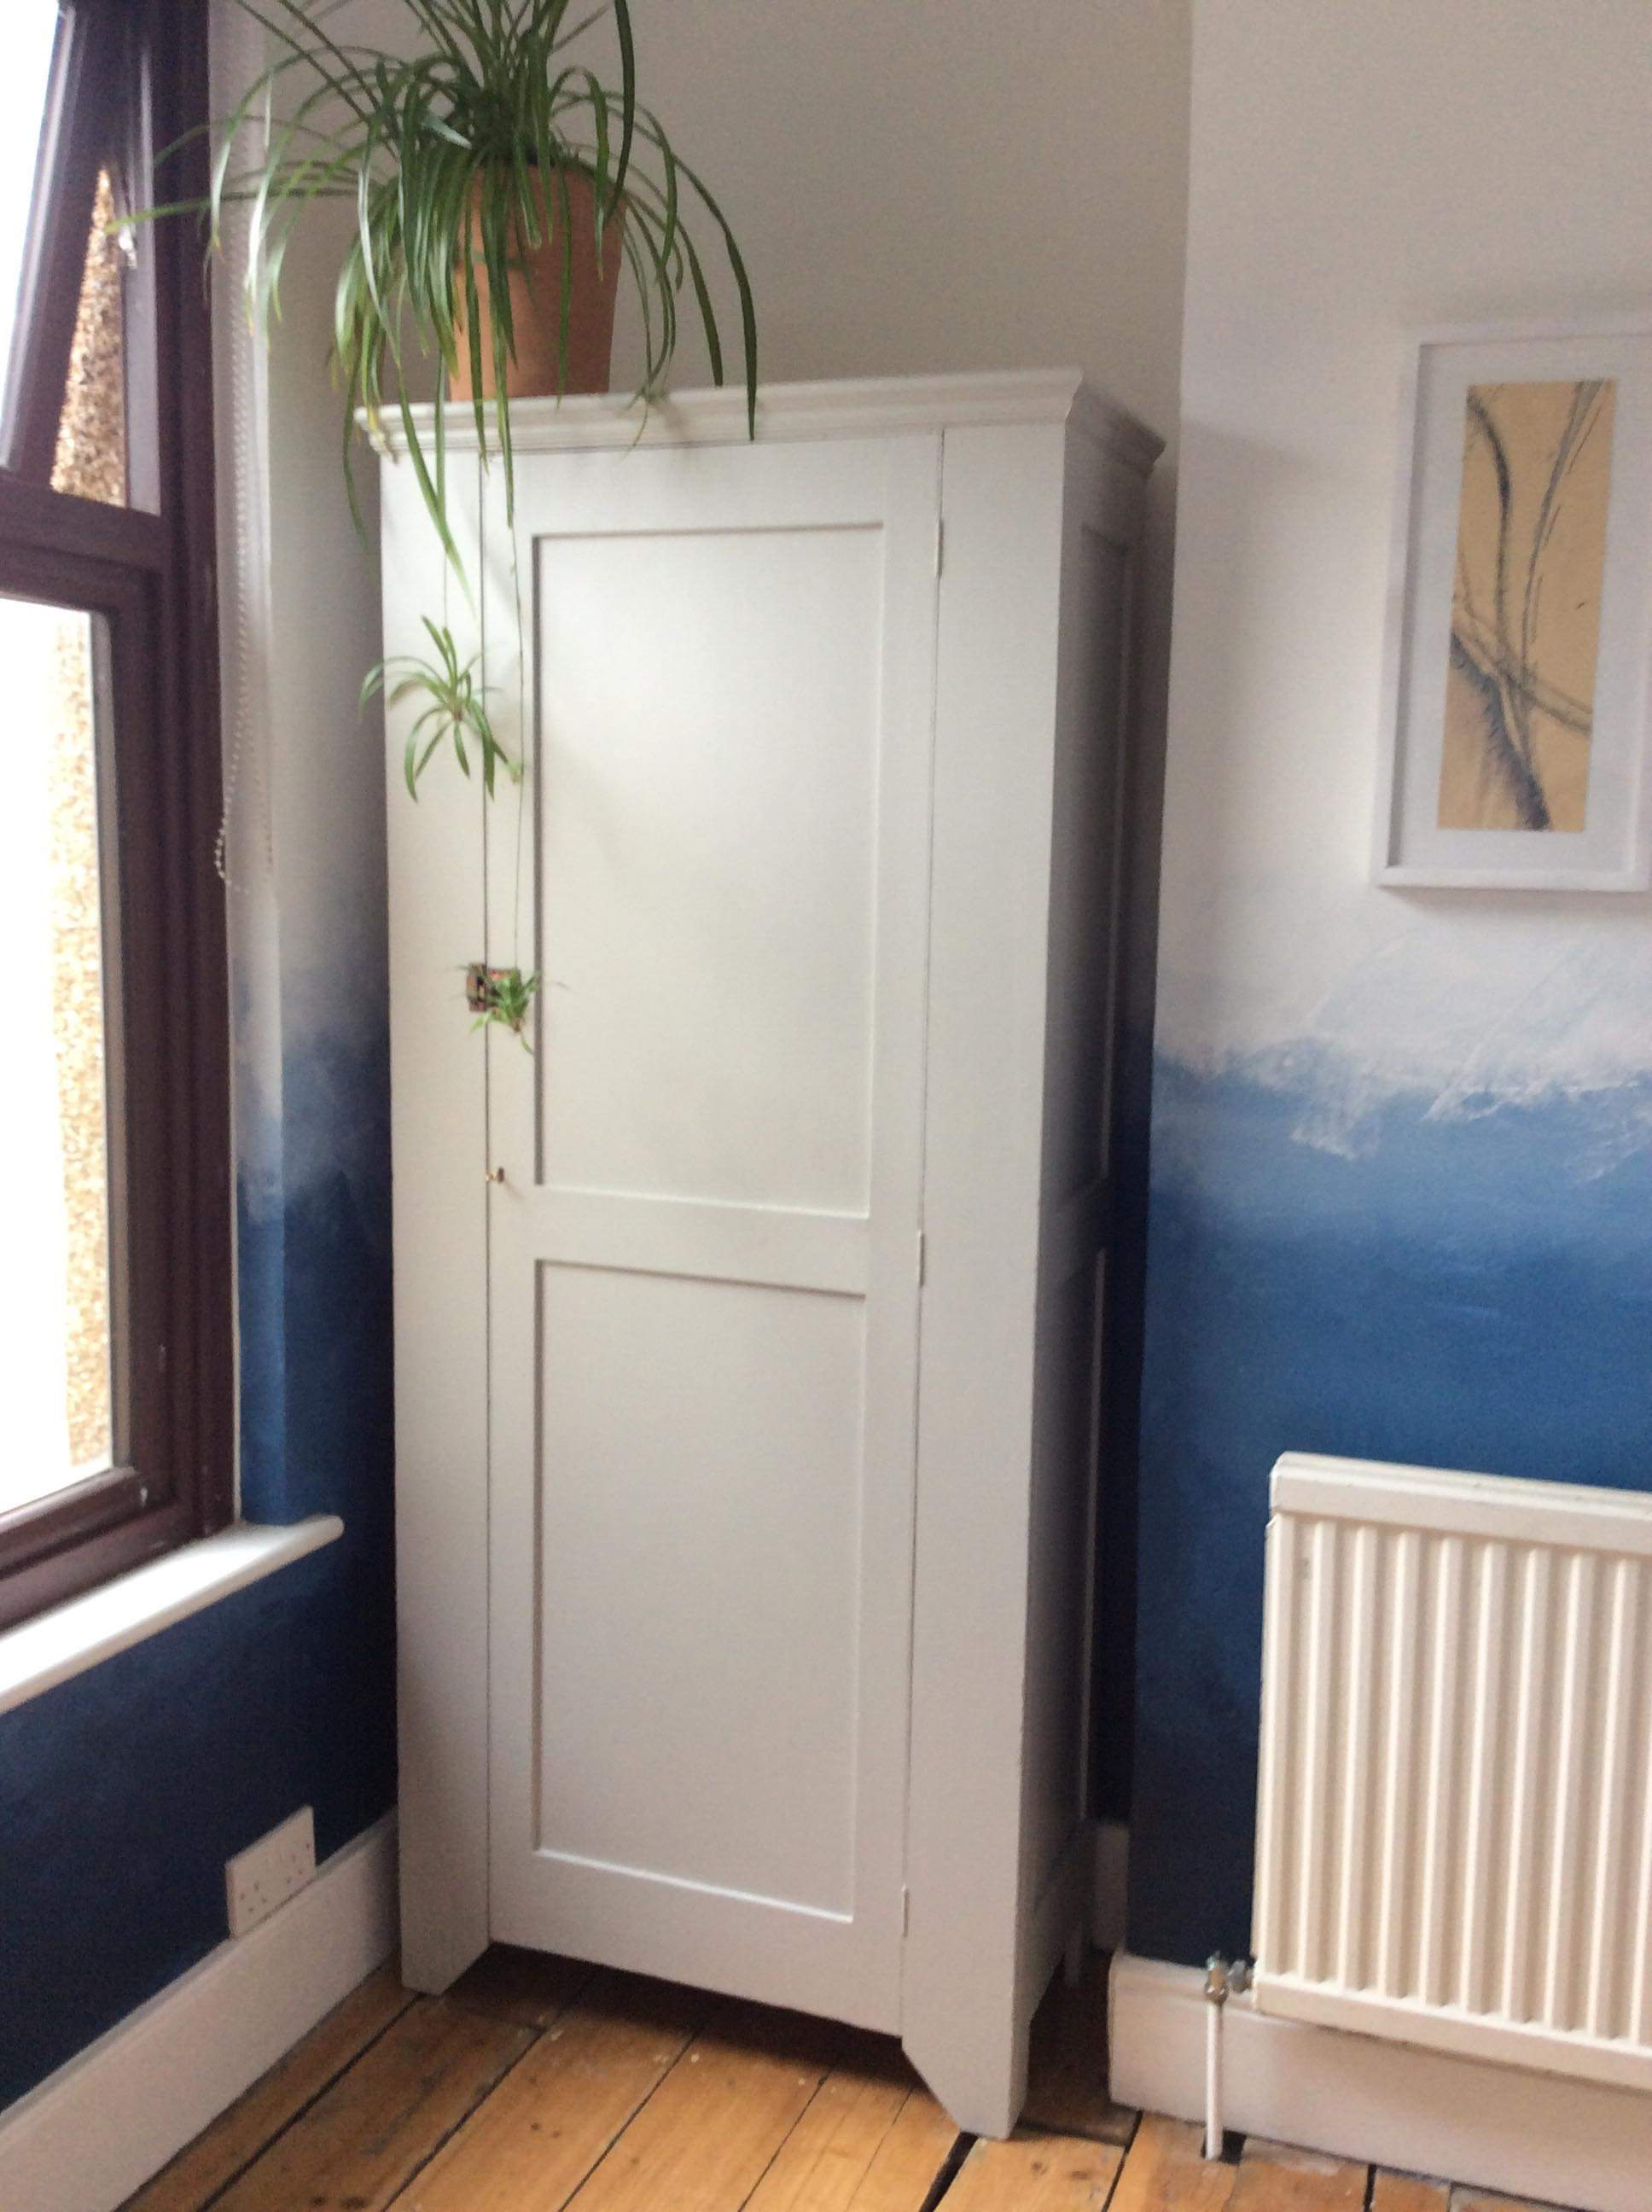 Upcycling project - Upcycled wardrobe using recycled paint from Community RePaint Bristol City. The warddrobe has been painted with grey paint.